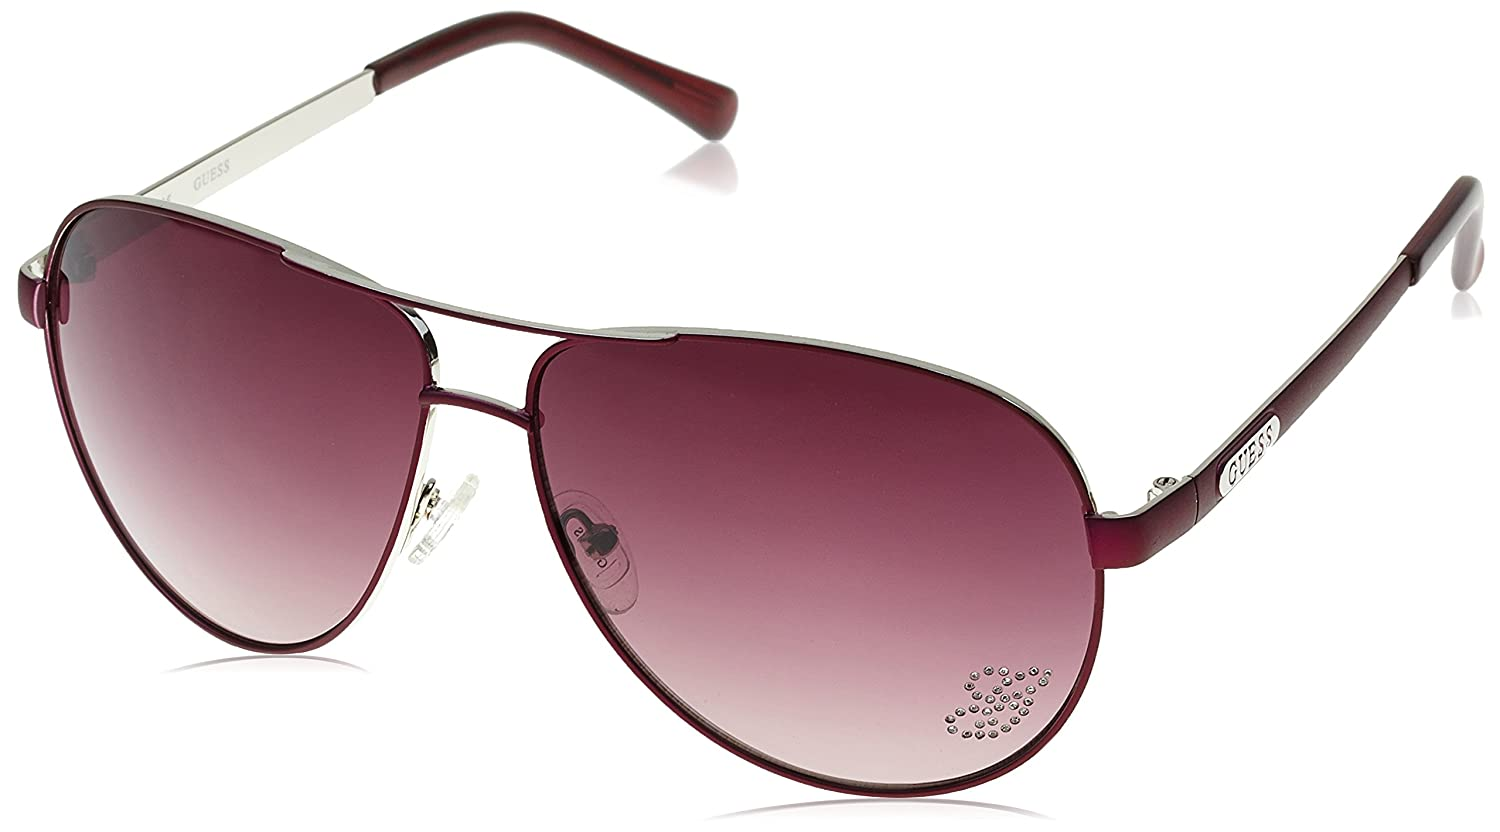 b6ae78fa7e9e4 Amazon.com  GUESS Women s Metal Oversize Aviator Sunglasses PUR-58 63 mm   Clothing